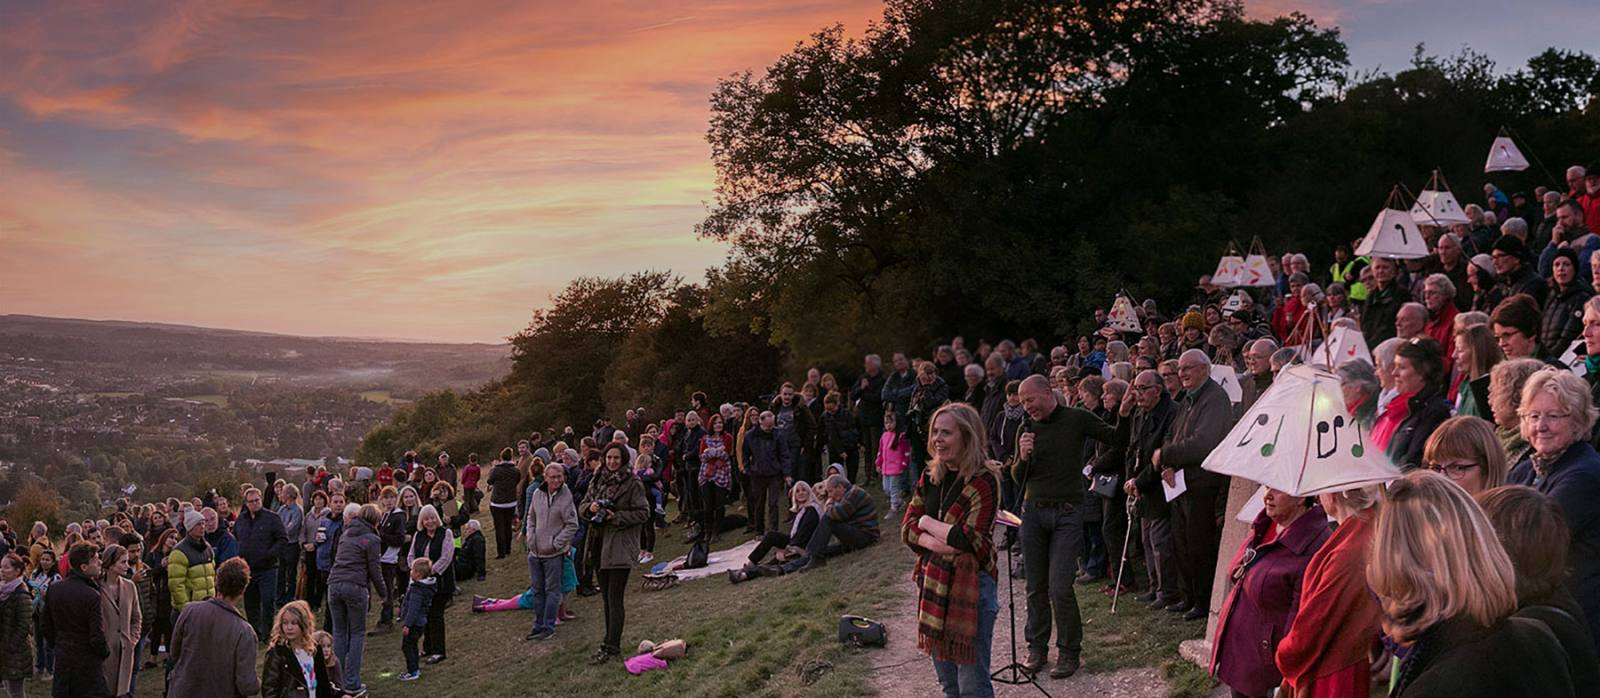 Crowd standing on Box Hill at dusk